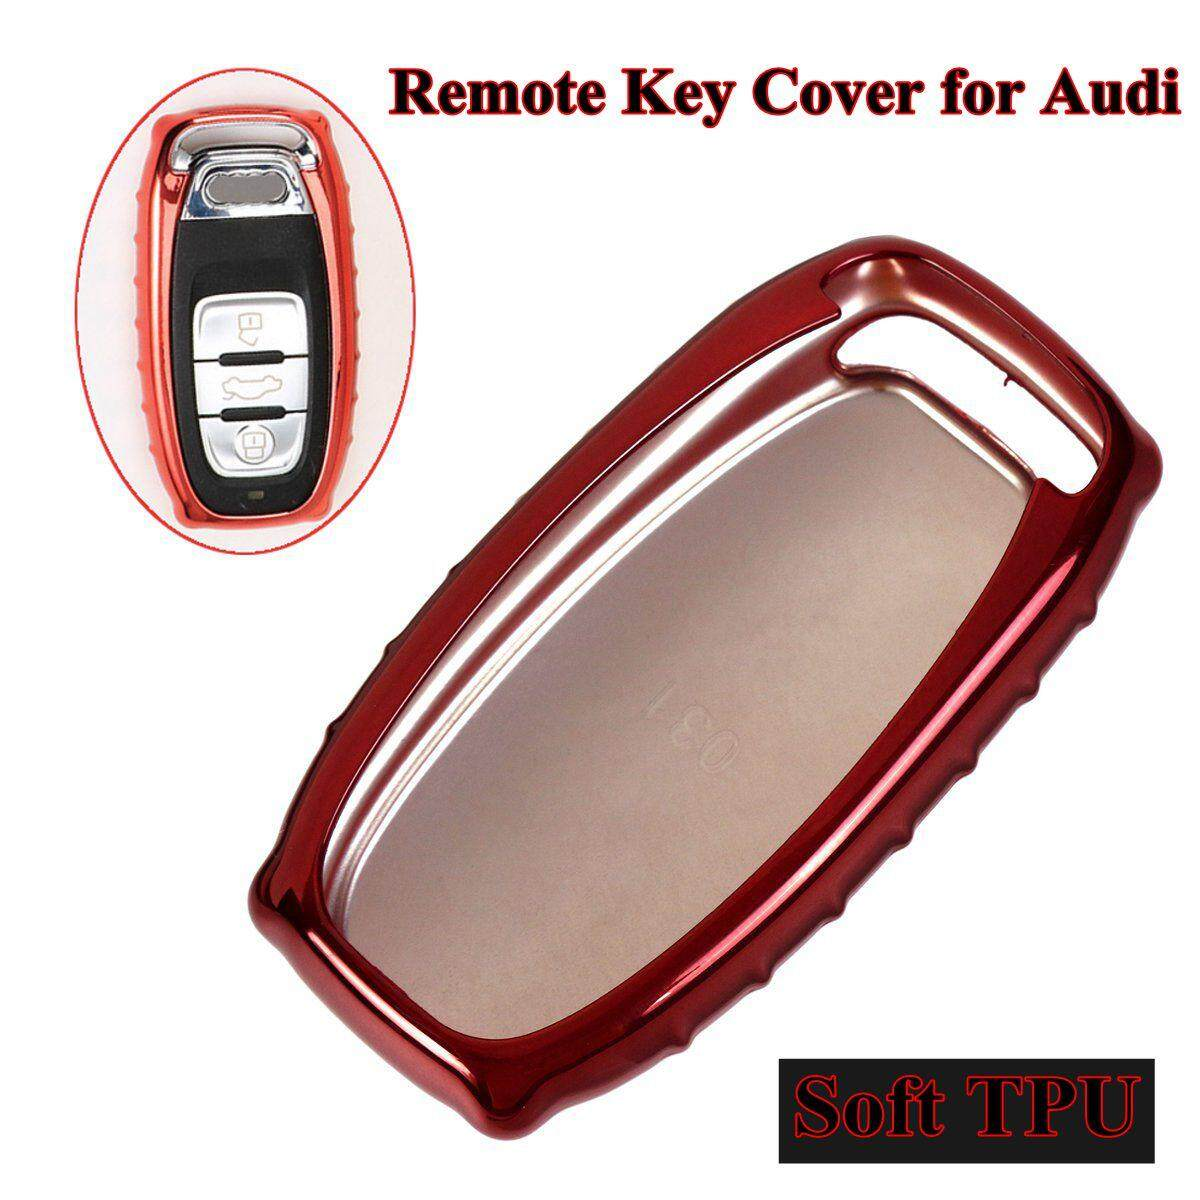 Tpu Remote Key Cover Case Shell For Audi A4 A5 A6 Q5 Rs7 S7 A7 A8 Q5 S5 S6 (red) By Teamwin.